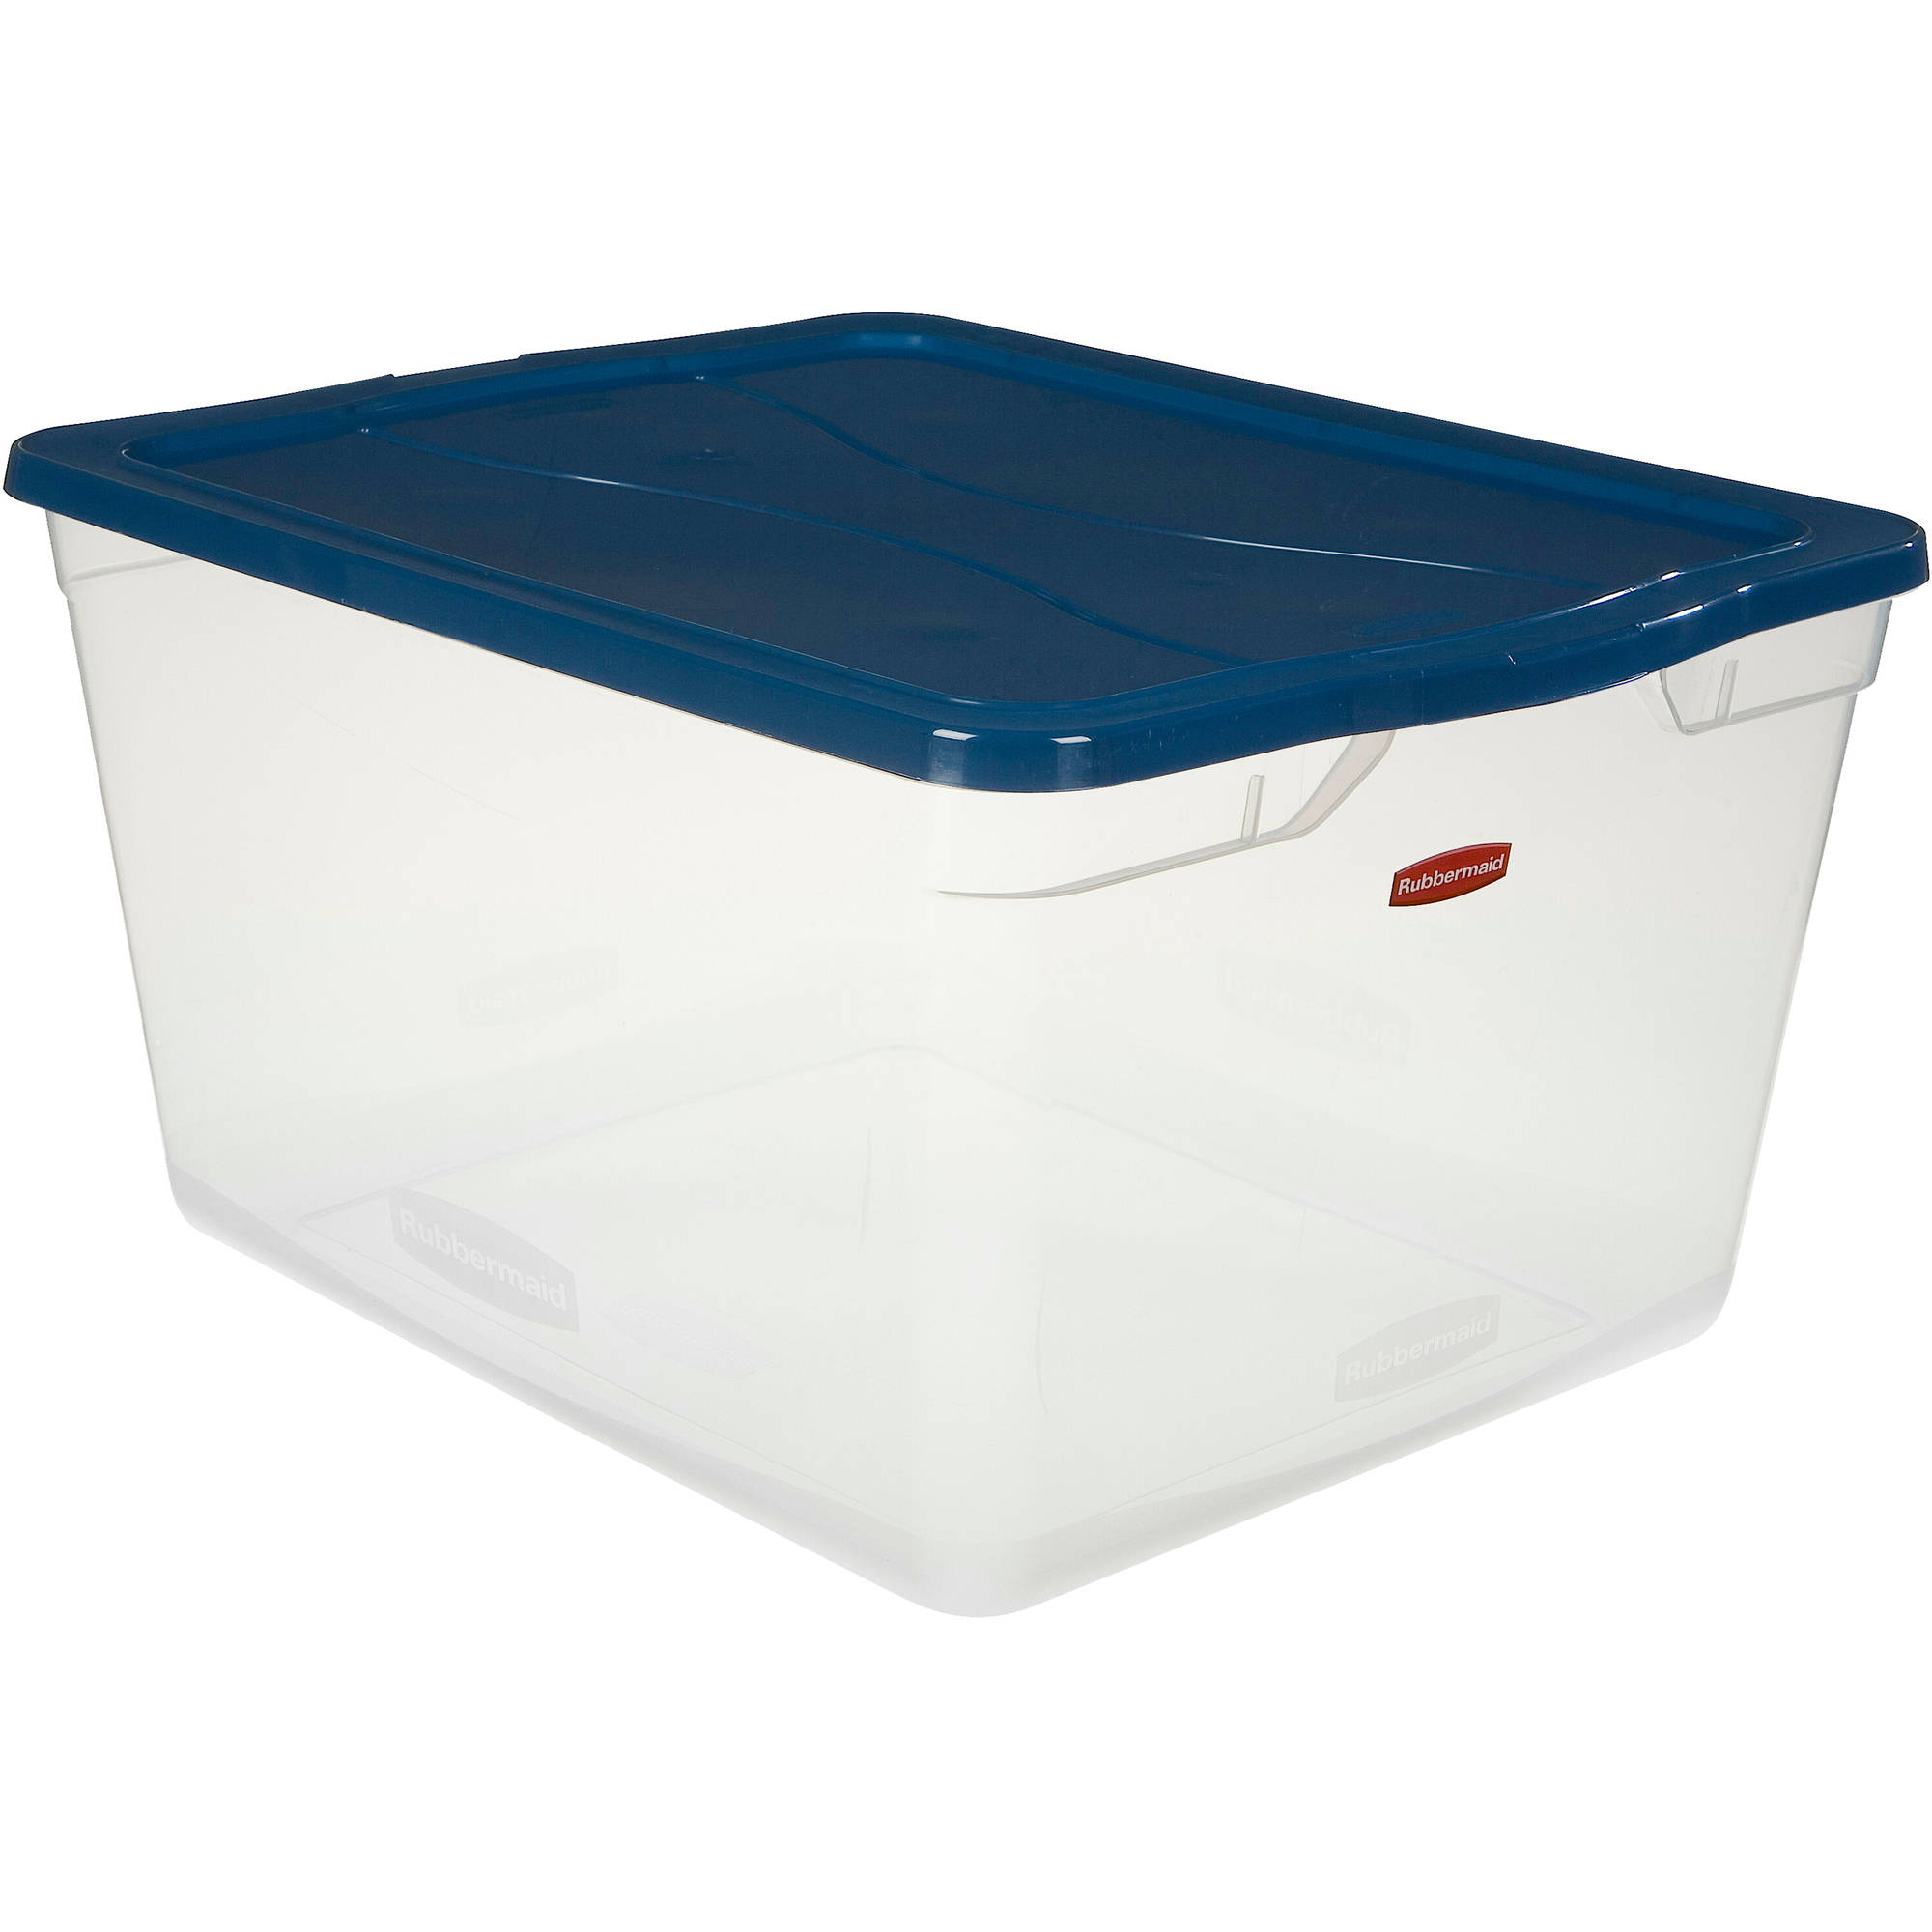 Rubbermaid 17.75-Gallon (71-Quart) Clever Store Container, Clear/Comfort Blue, Set of 4